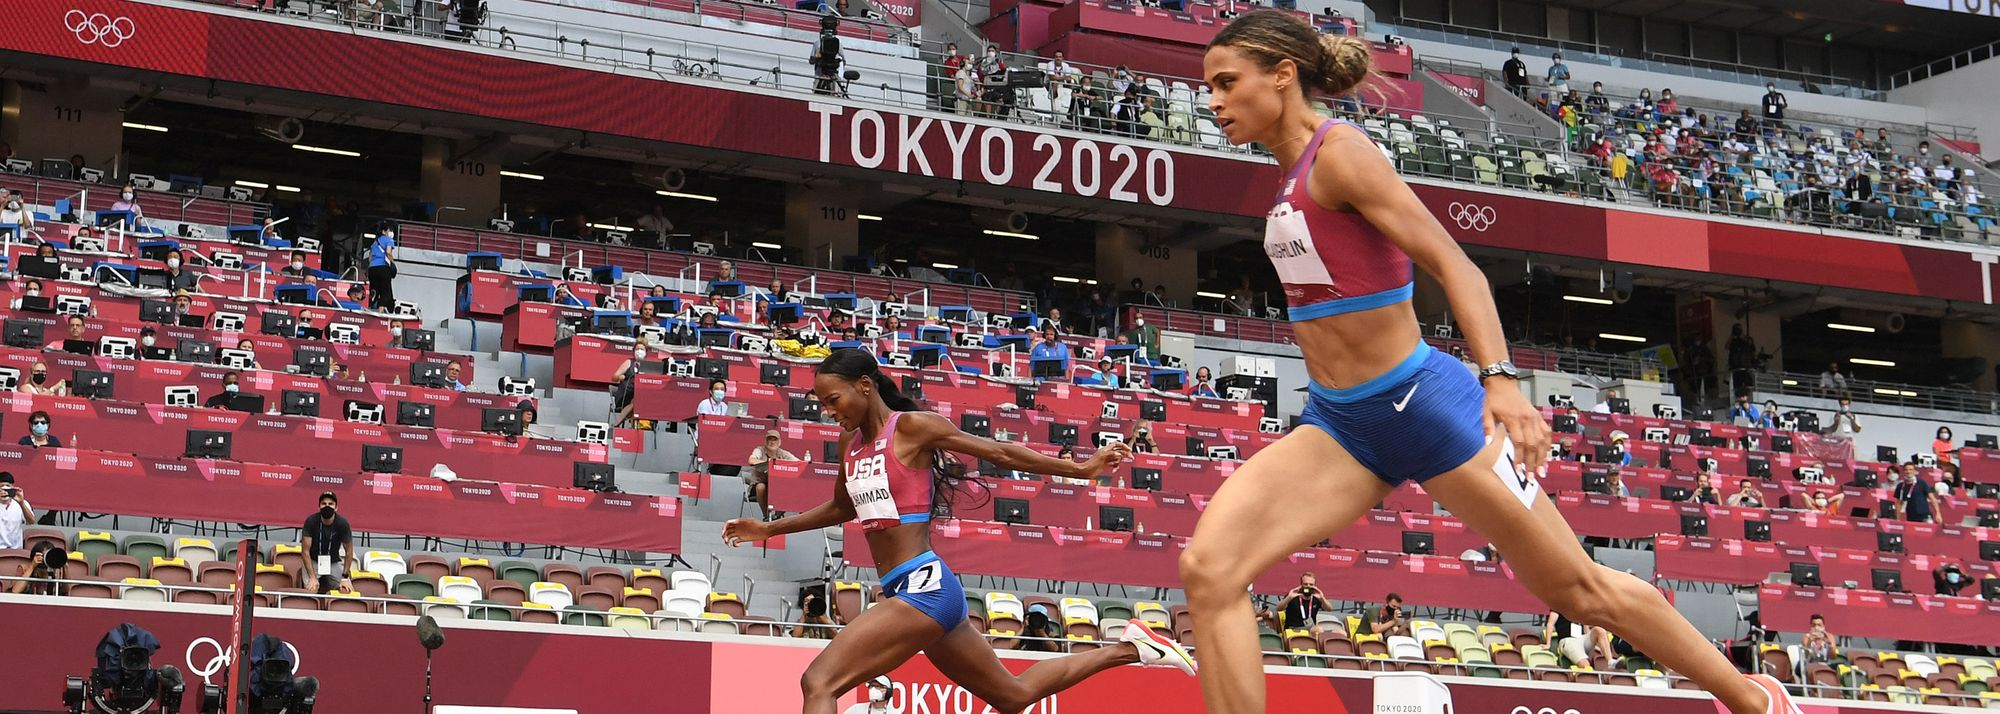 Just 24 hours after a historic race in the men's 400m hurdles, the women's final resulted in a similarly mind-boggling outcome